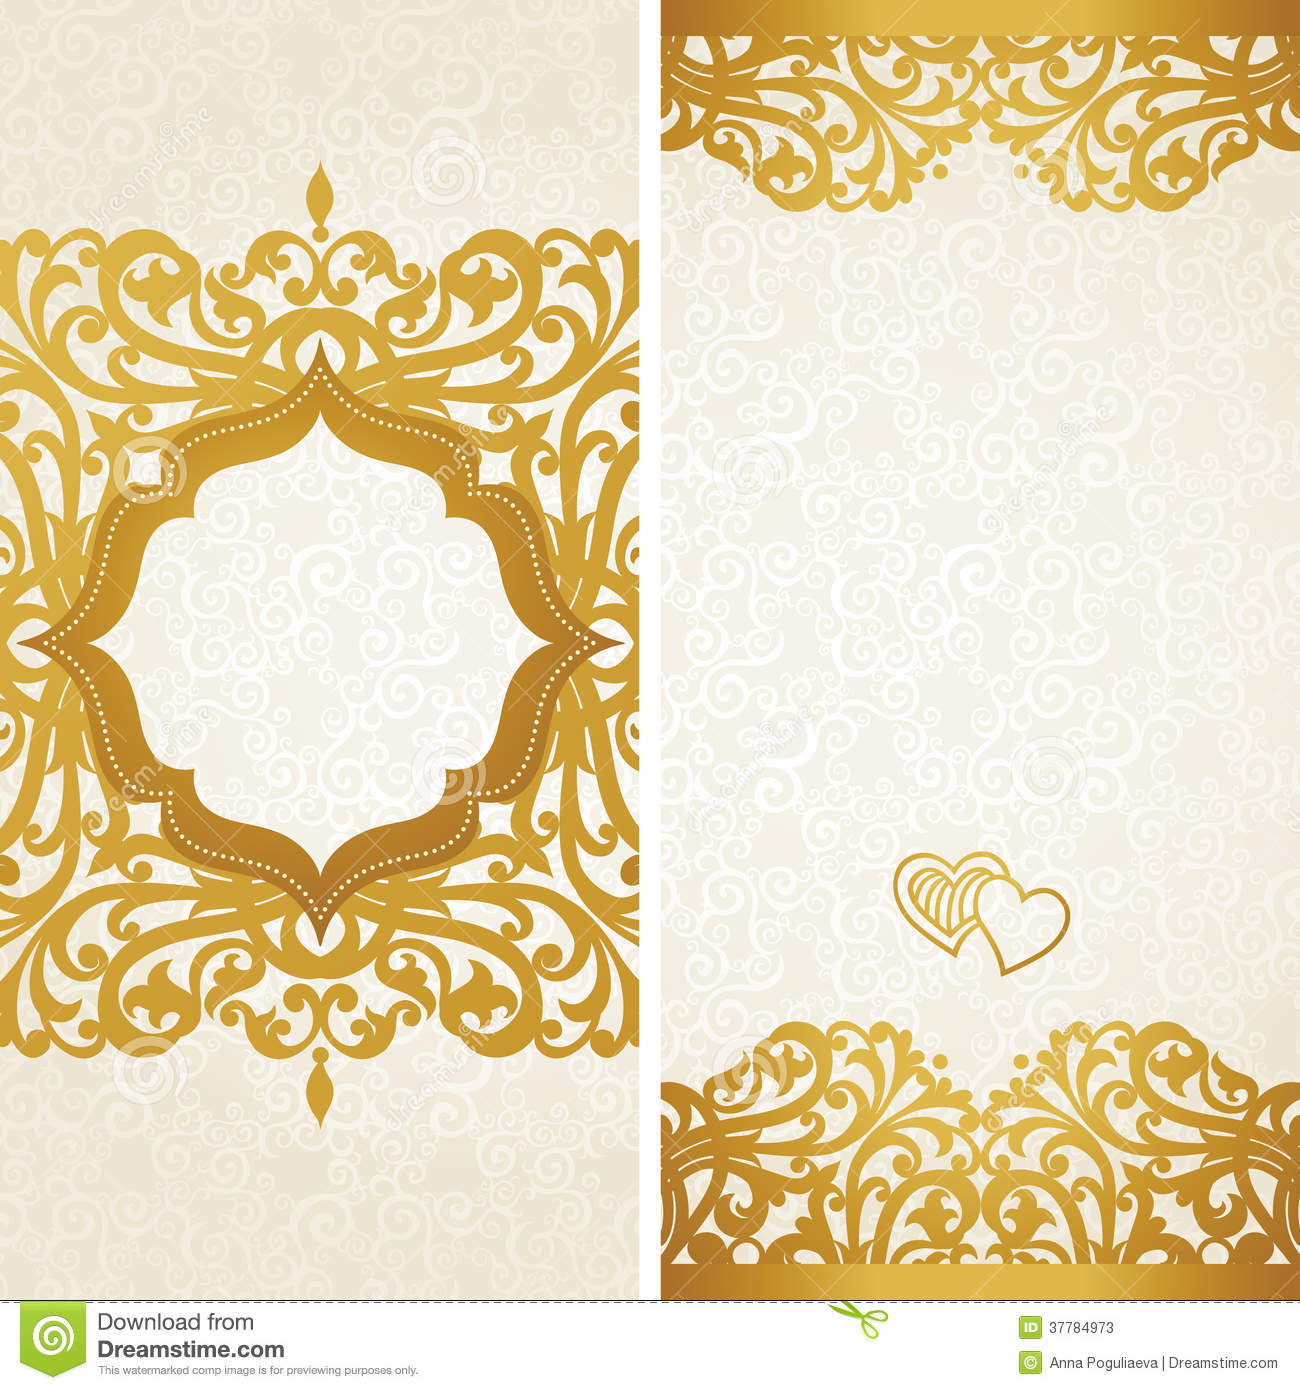 Vintage Greeting Cards With Swirls And Floral Motifs In